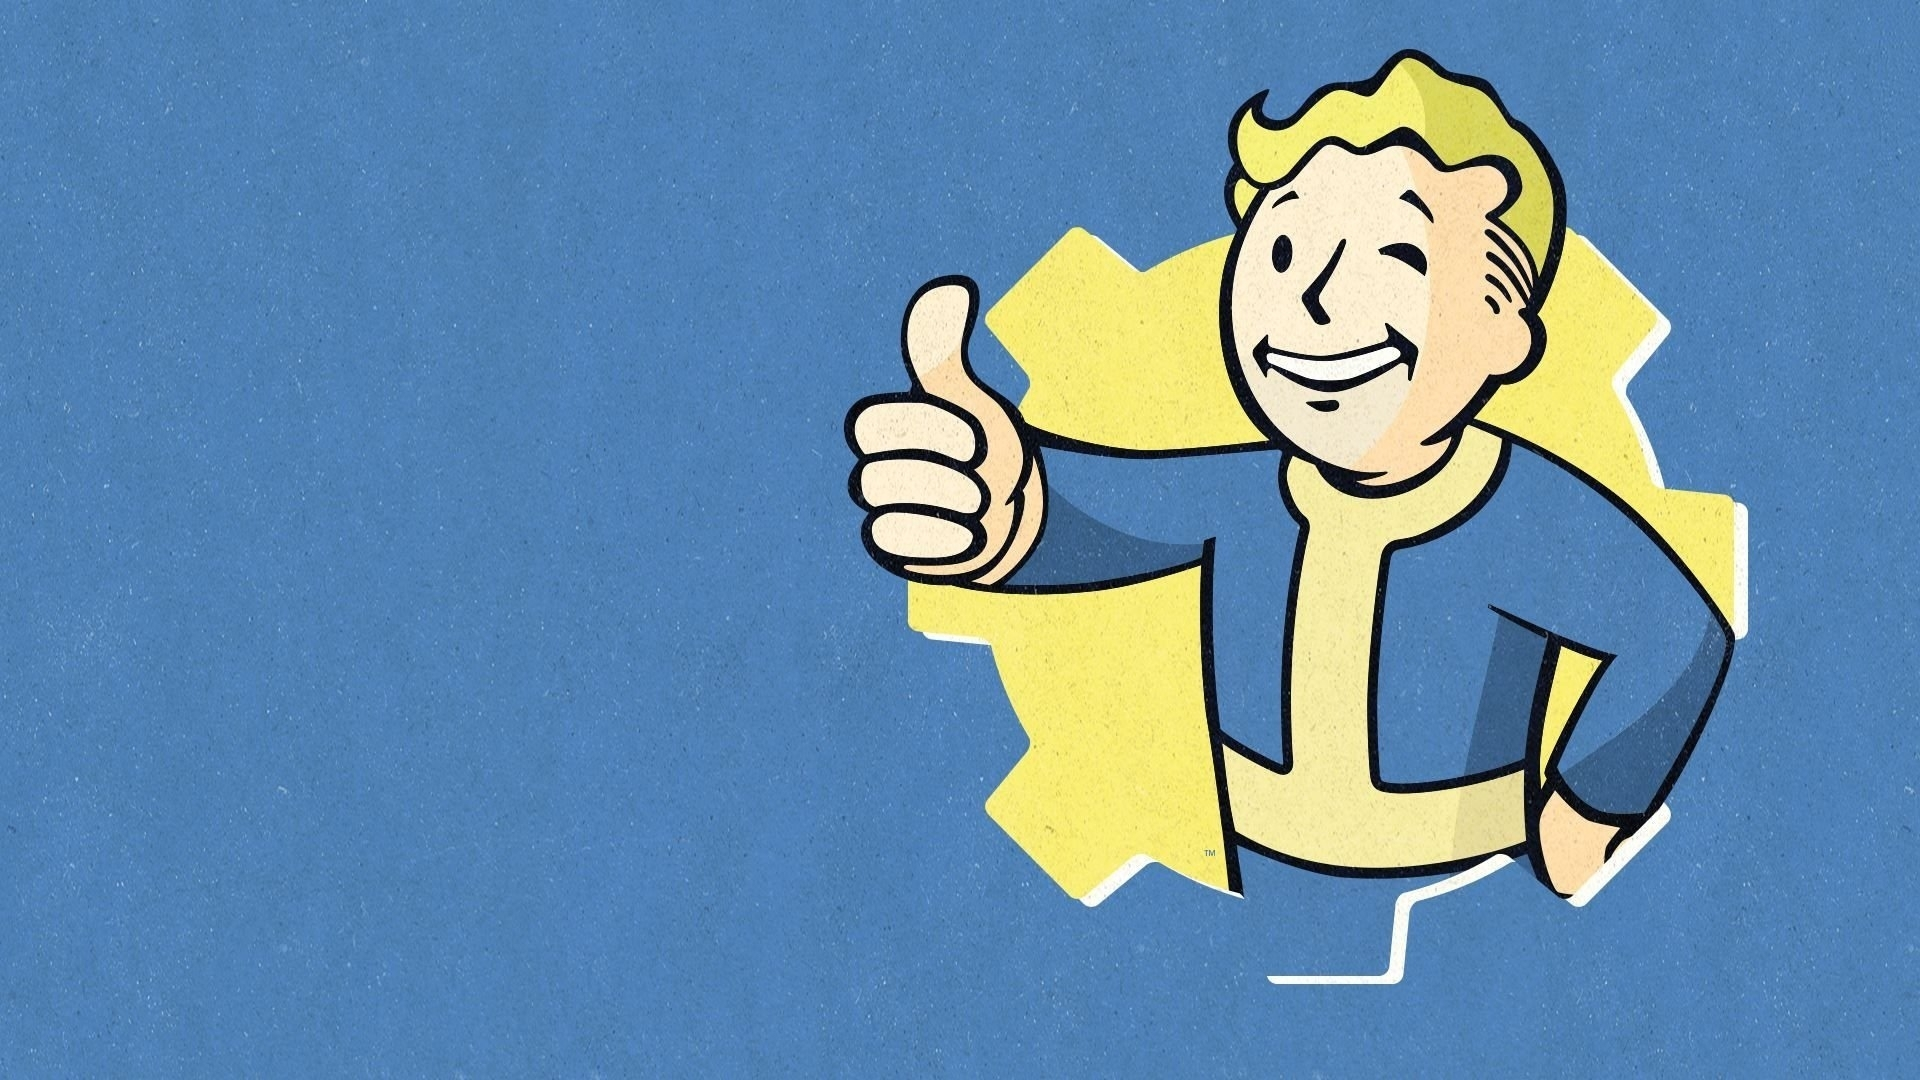 26 vault boy hd wallpapers | background images - wallpaper abyss